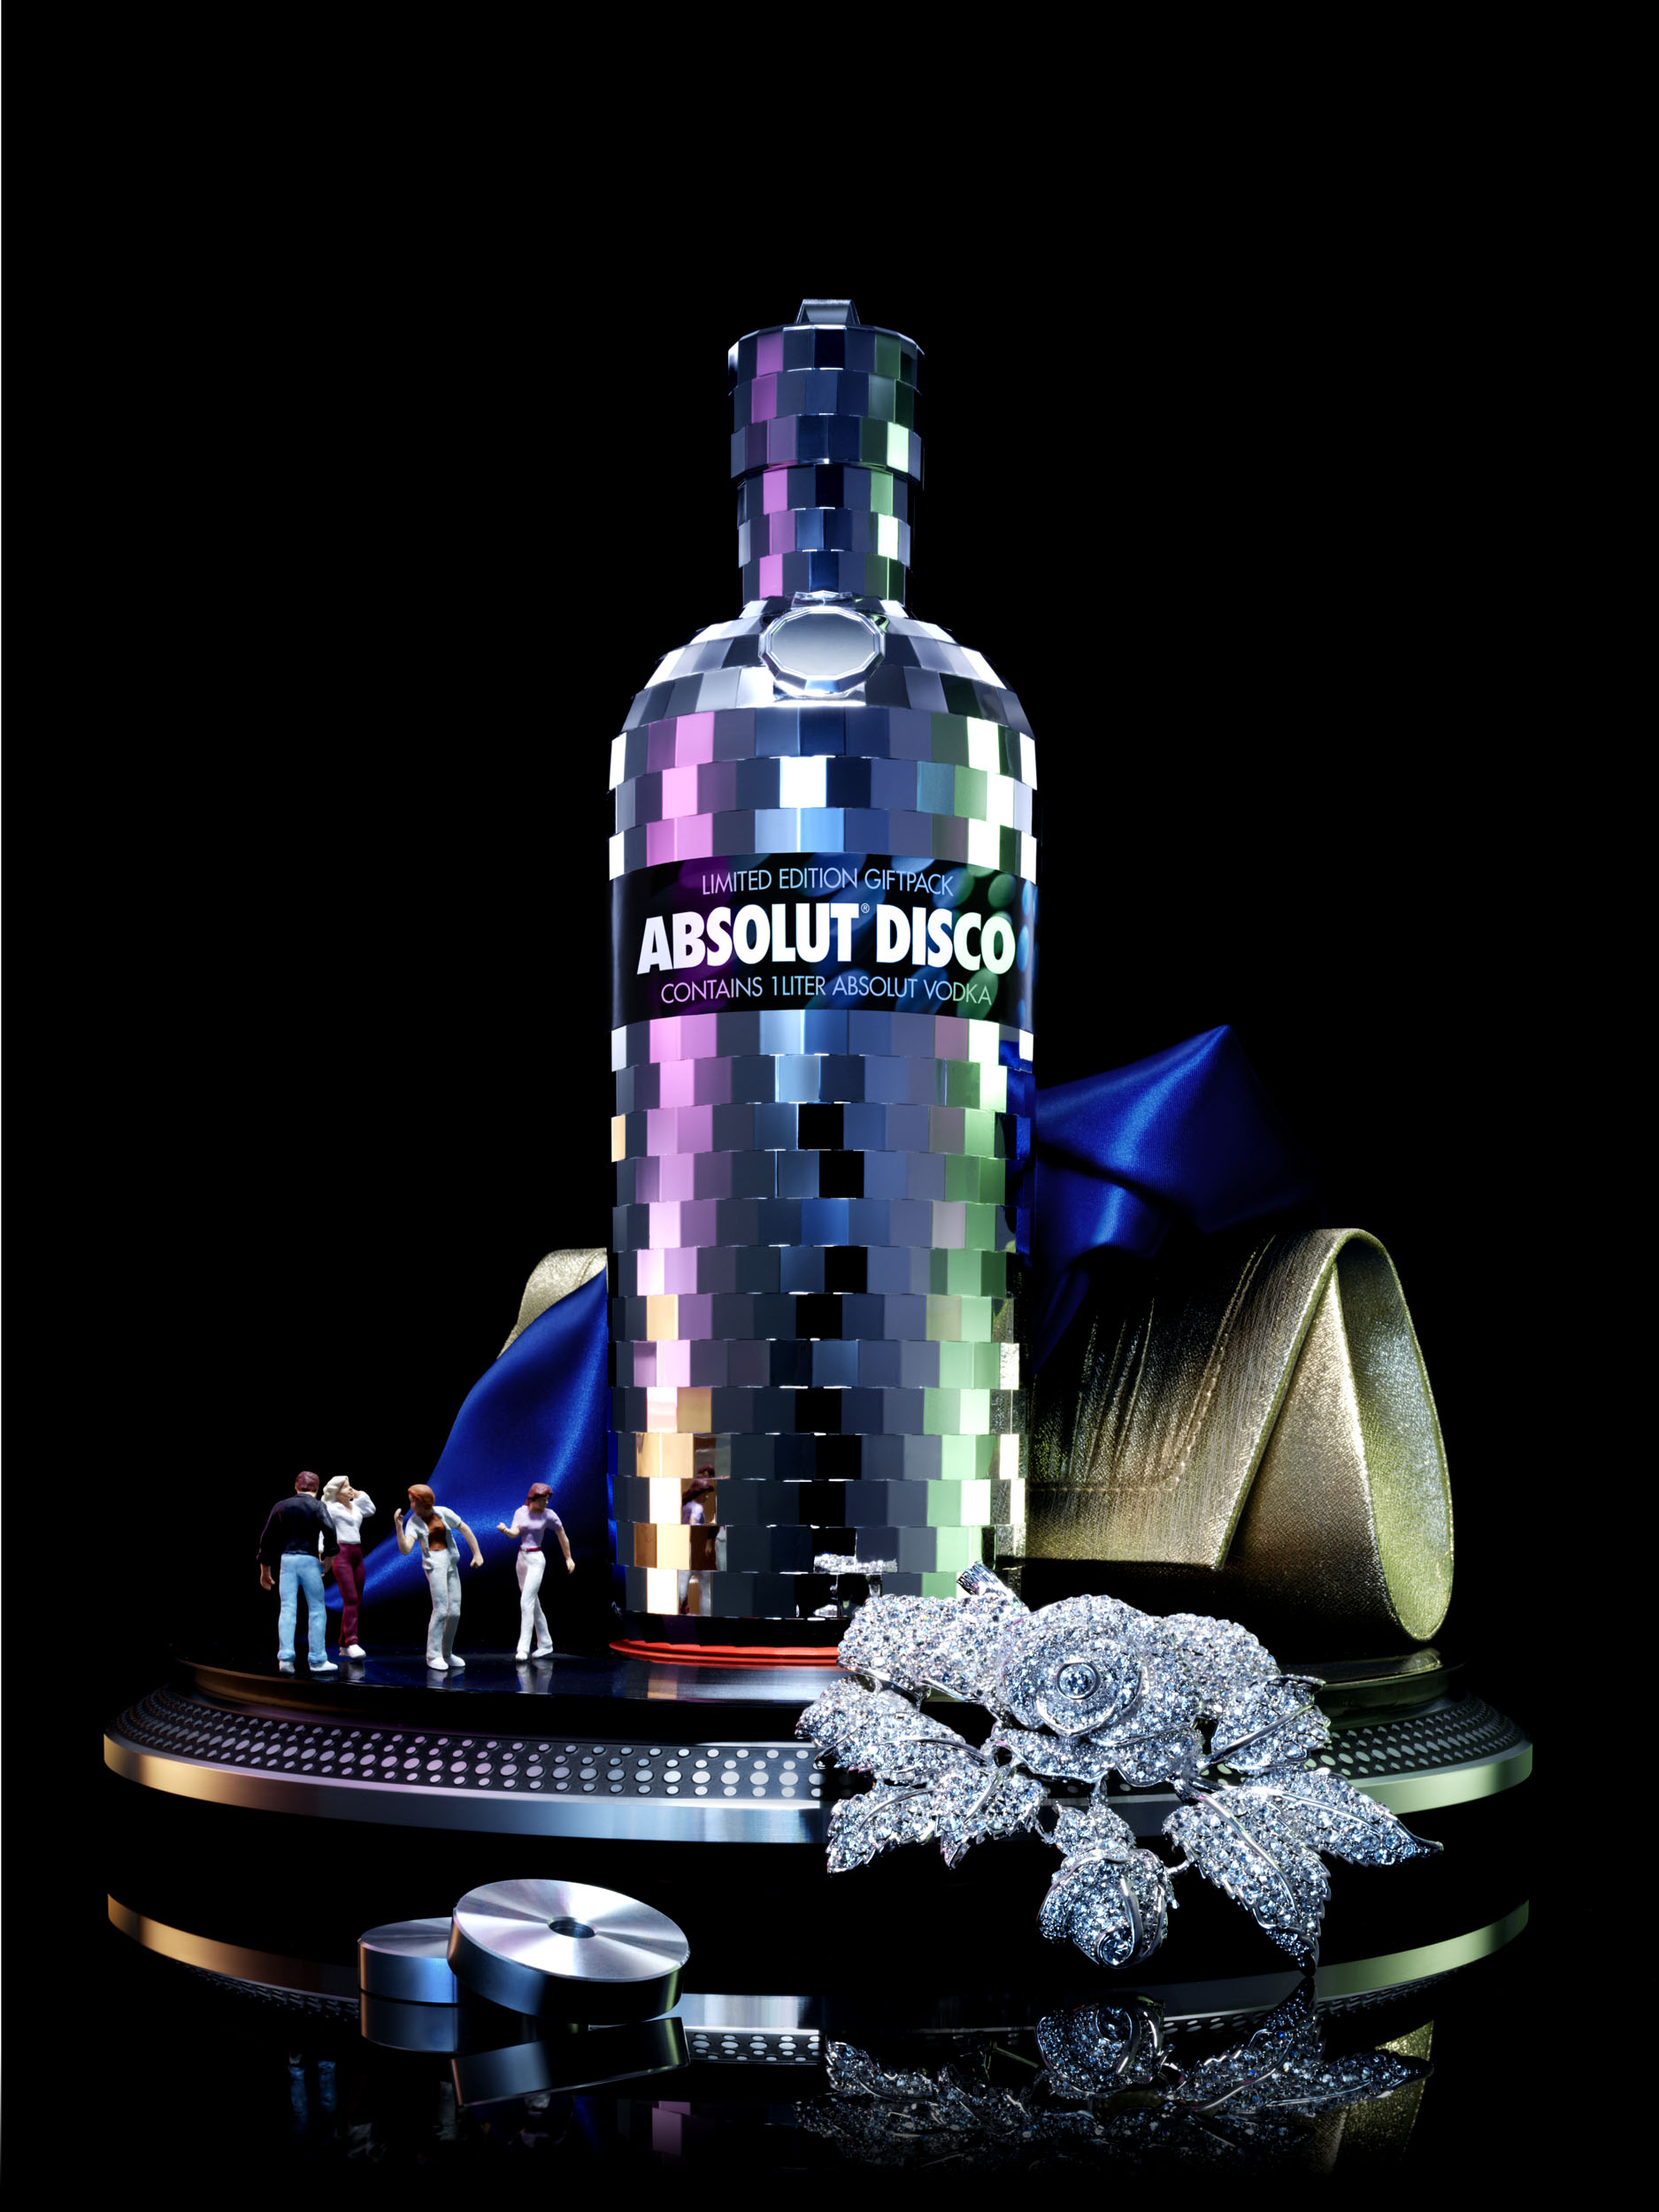 jensmortensen-absolut-vodka-04a29224